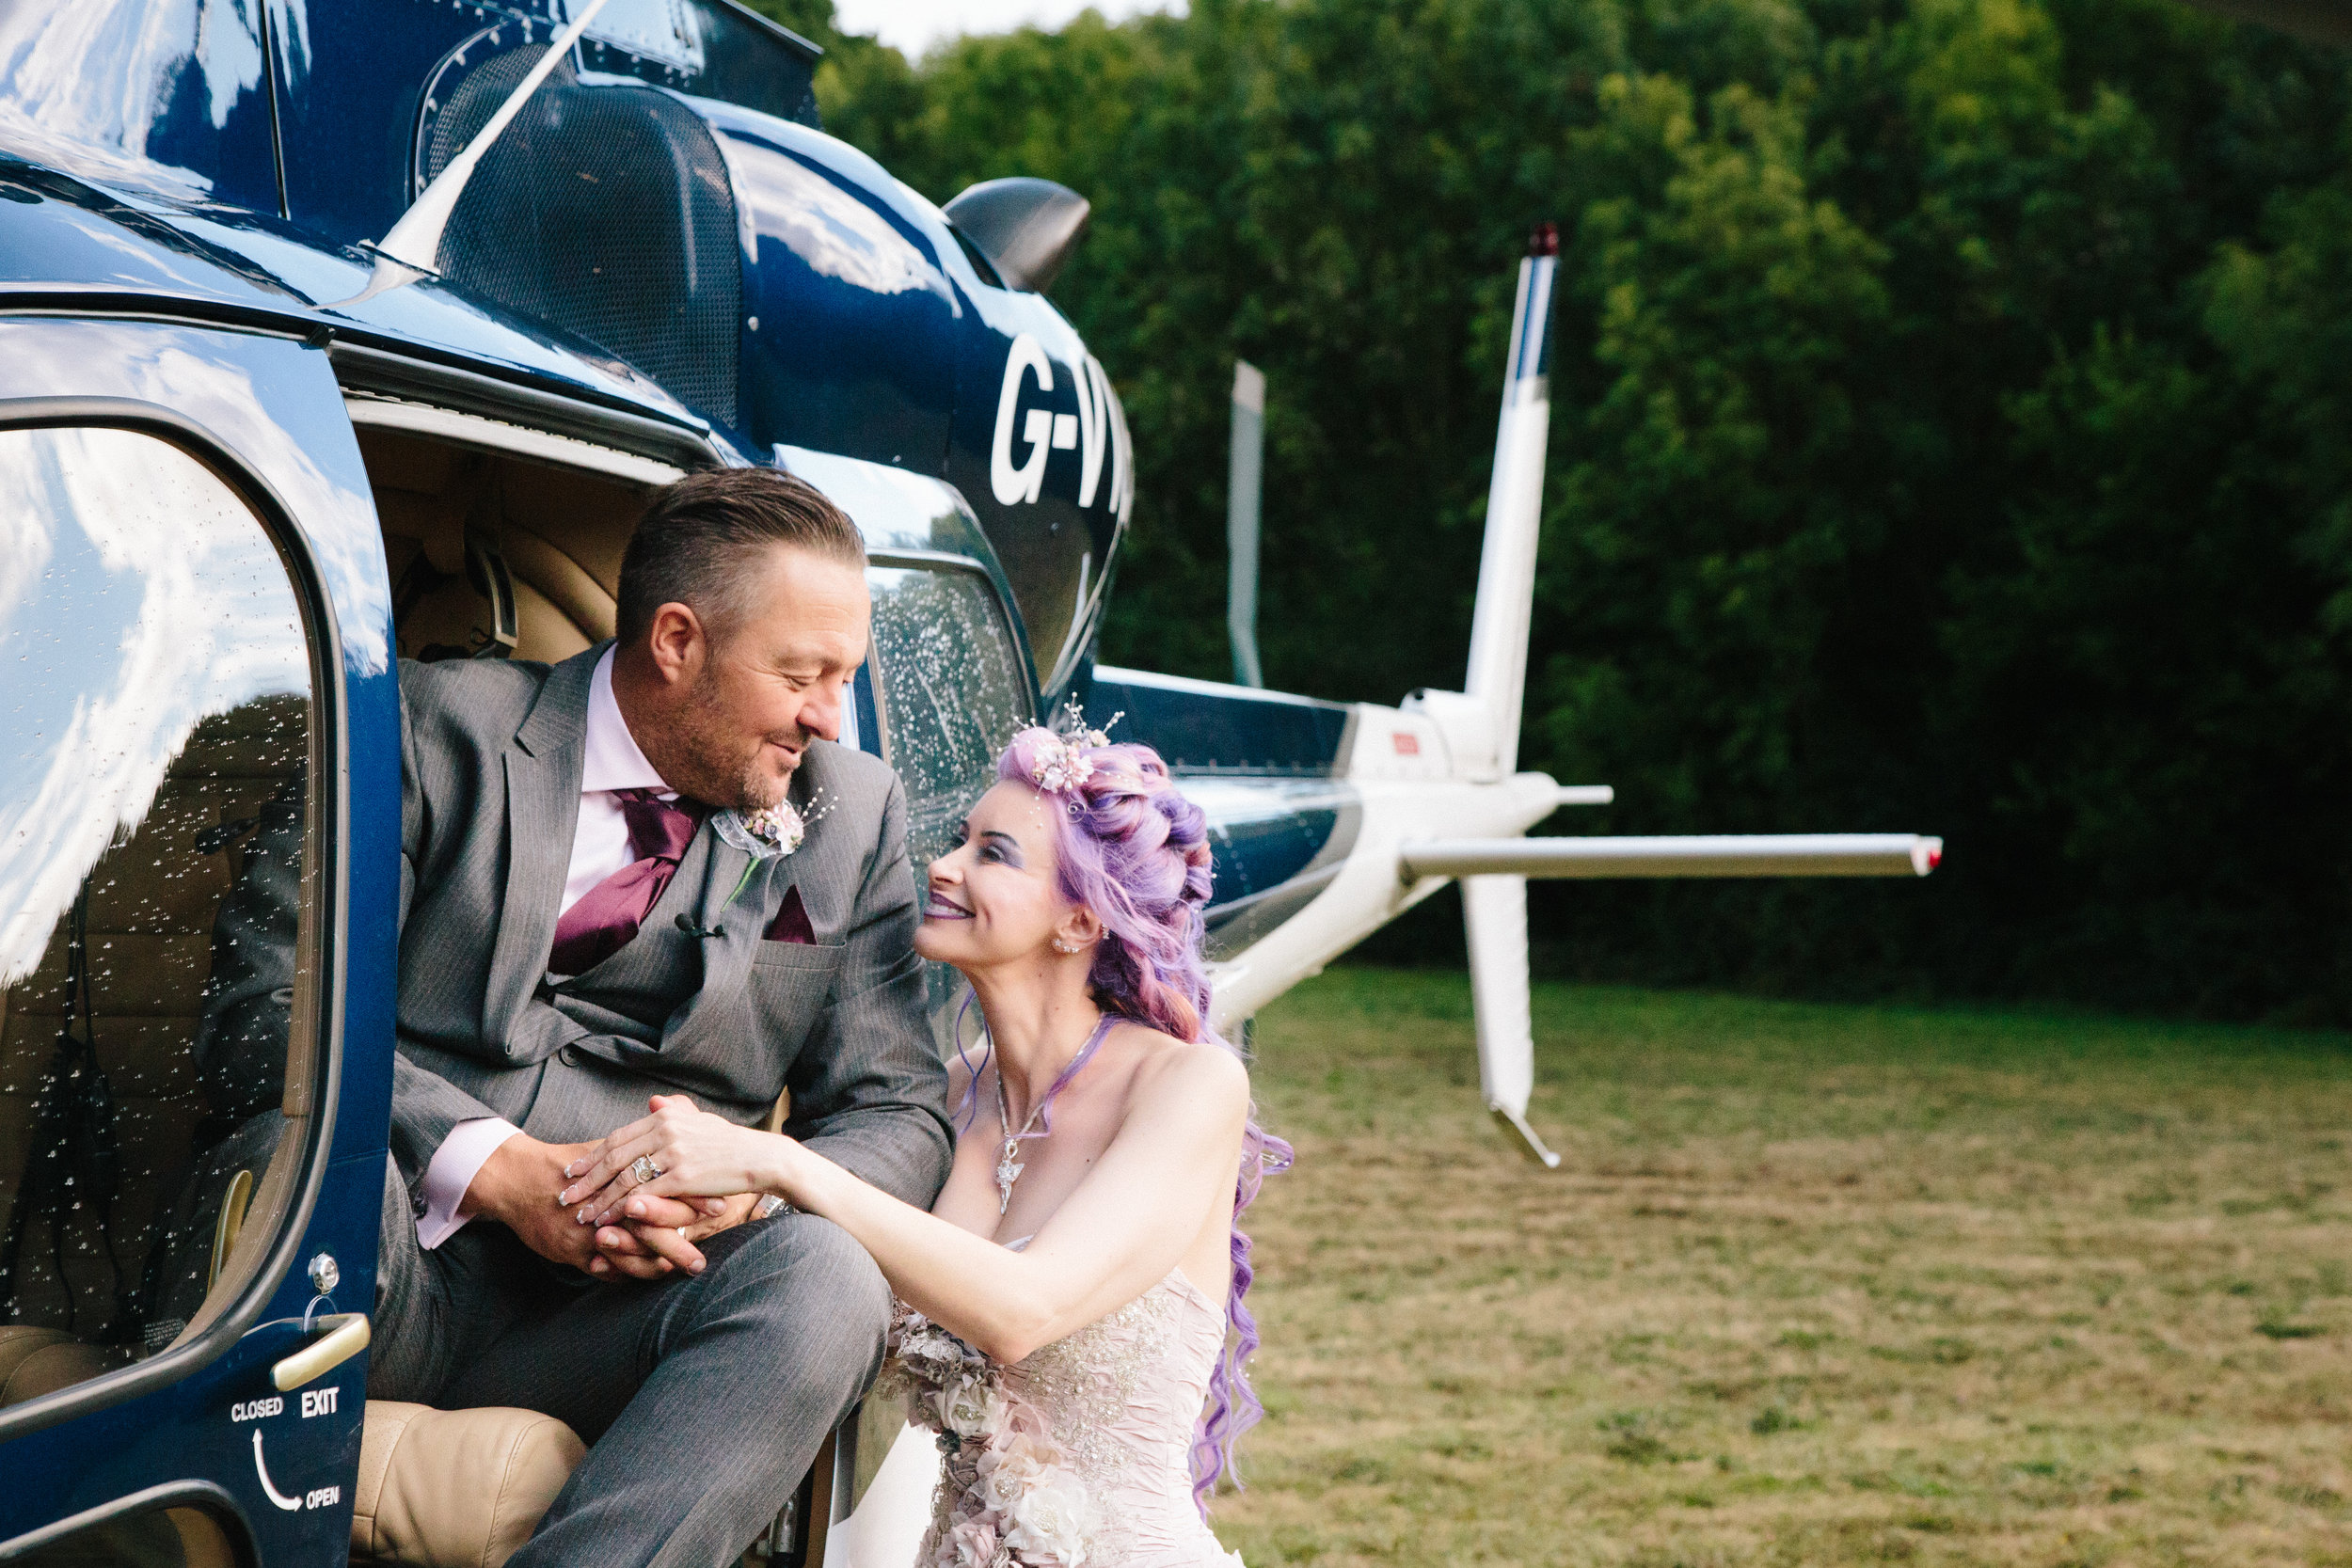 Helicopter-bride-essex-movie-theme-wedding-2